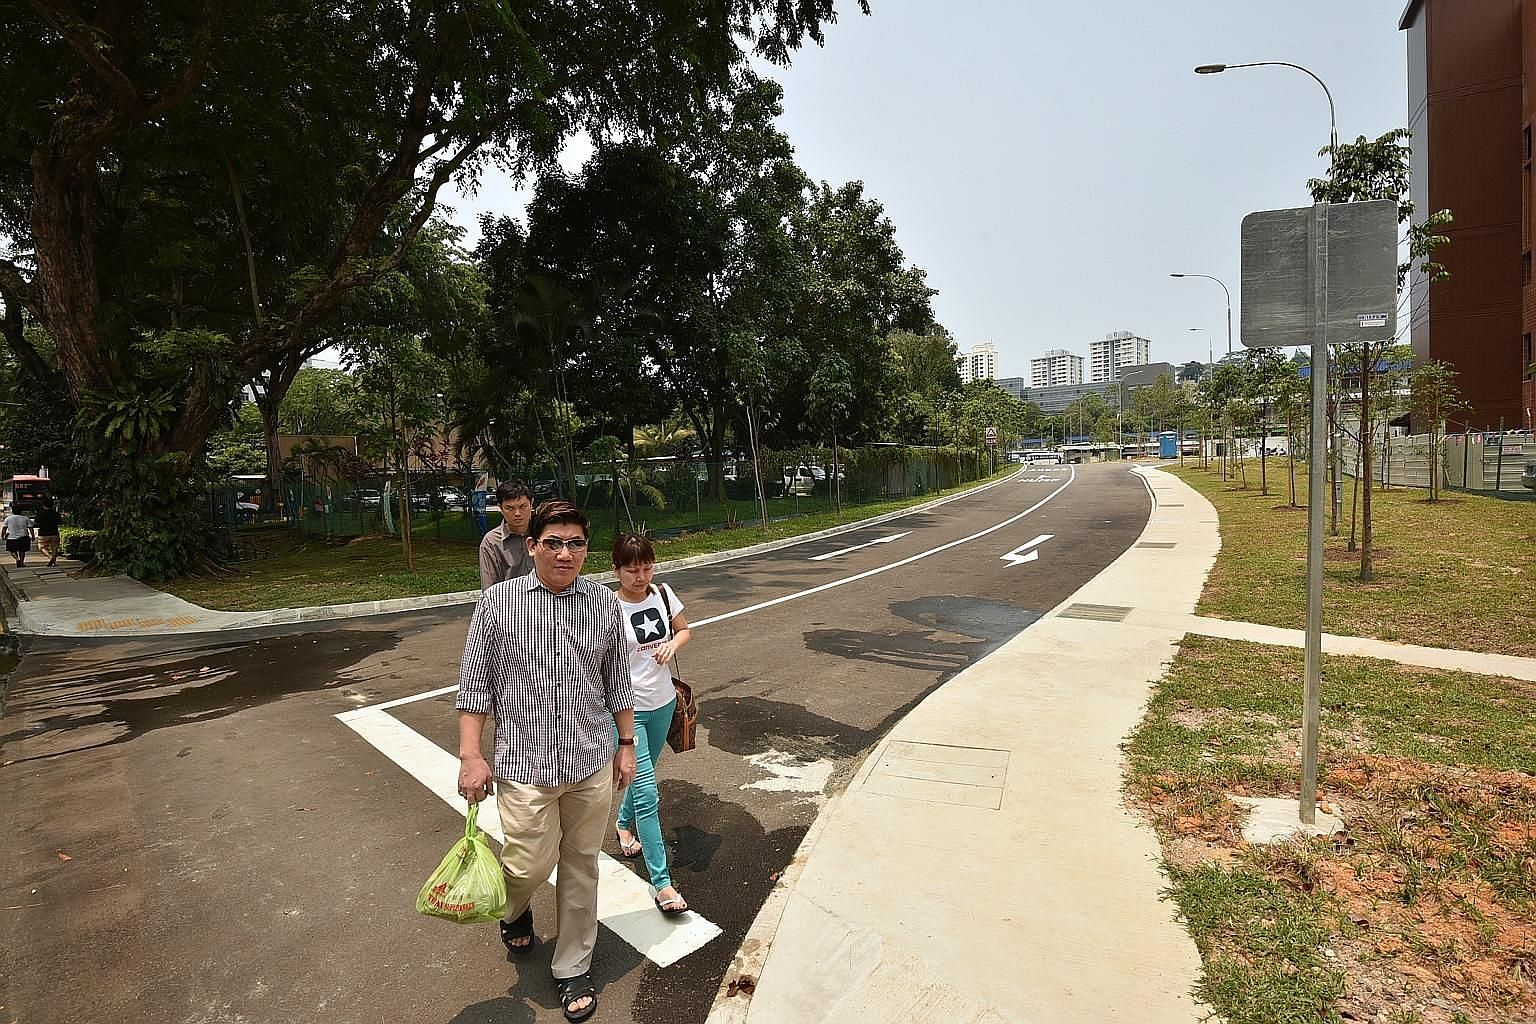 The new road, Bukit Merah Lane 4, with its 265 new parking spaces, is expected to ease traffic around Alexandra Village Food Centre. It also provides another route to Alexandra Village.